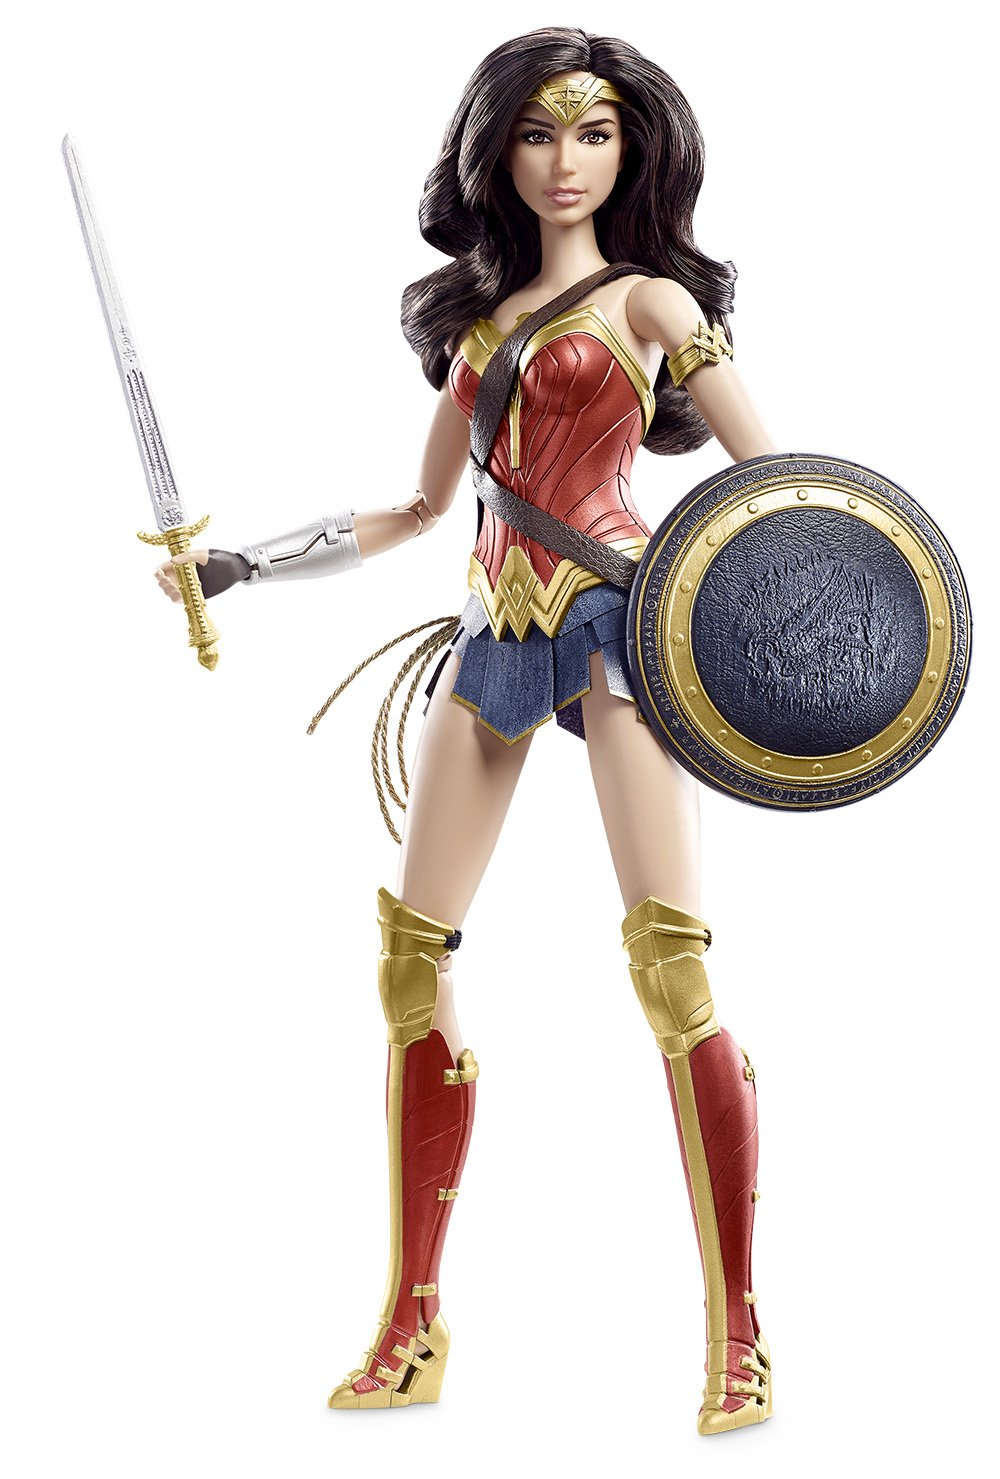 Barbie Collector Batman v Superman: Dawn of Justice Wonder Woman Doll